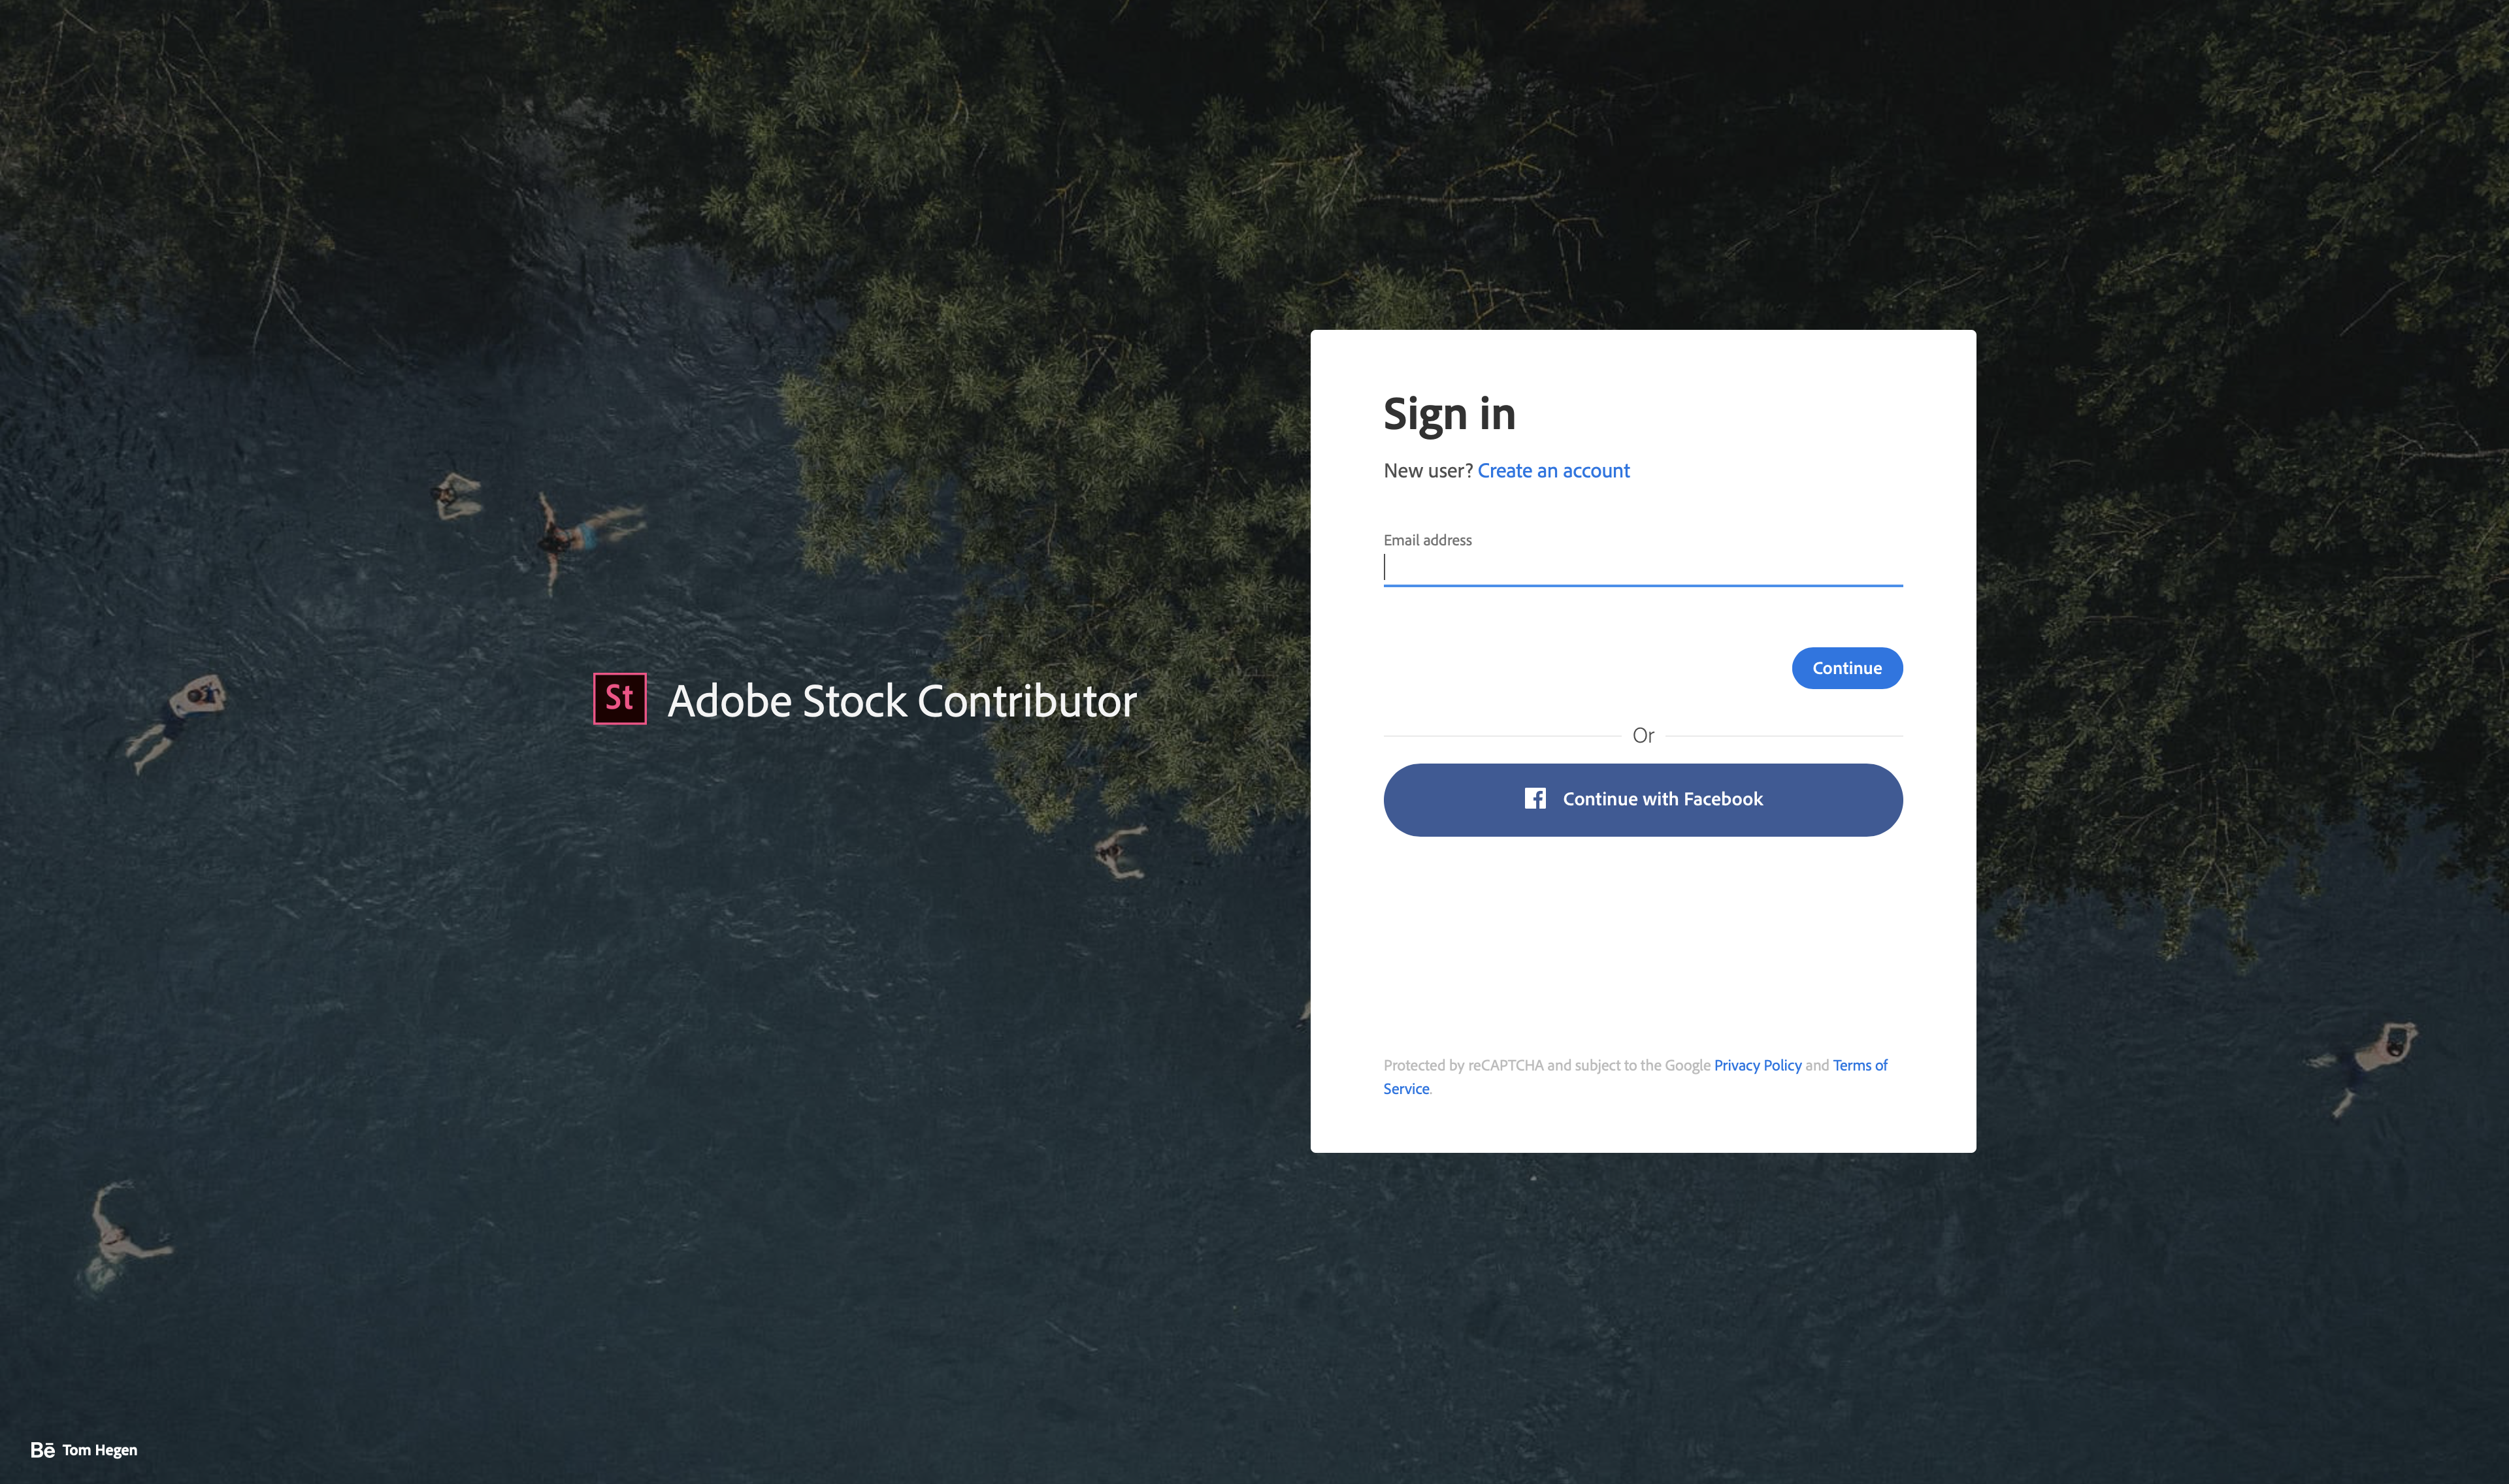 Sell your photos online with Adobe Stock